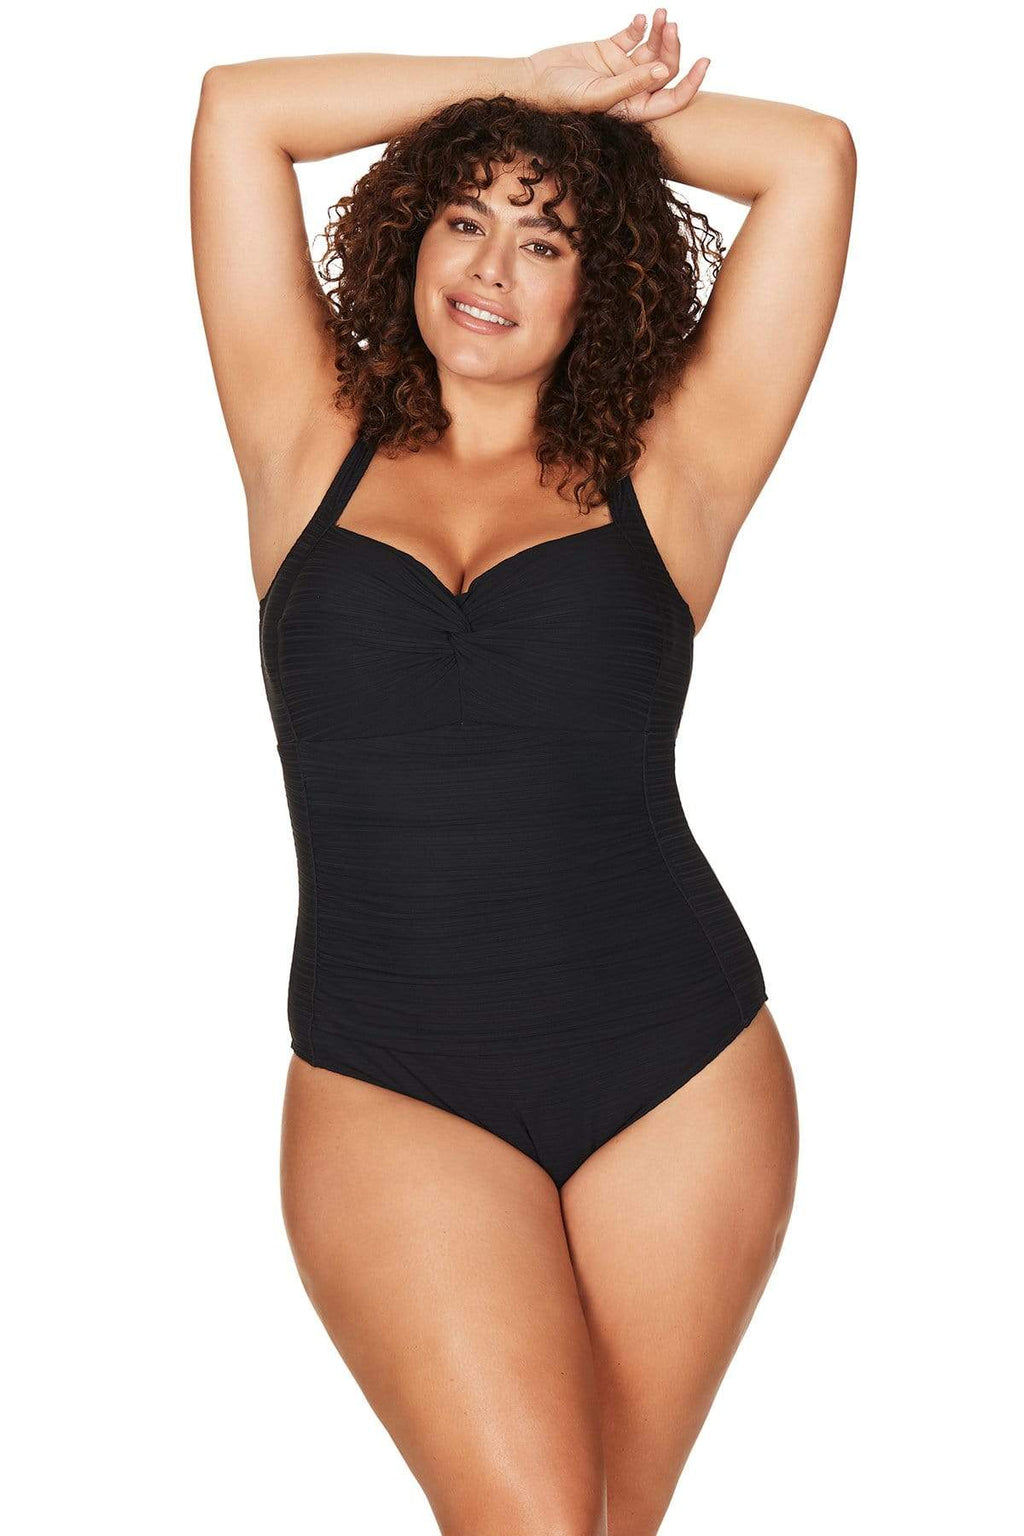 Artesands One Piece Aria Botticelli One Piece Plus Size Curvy